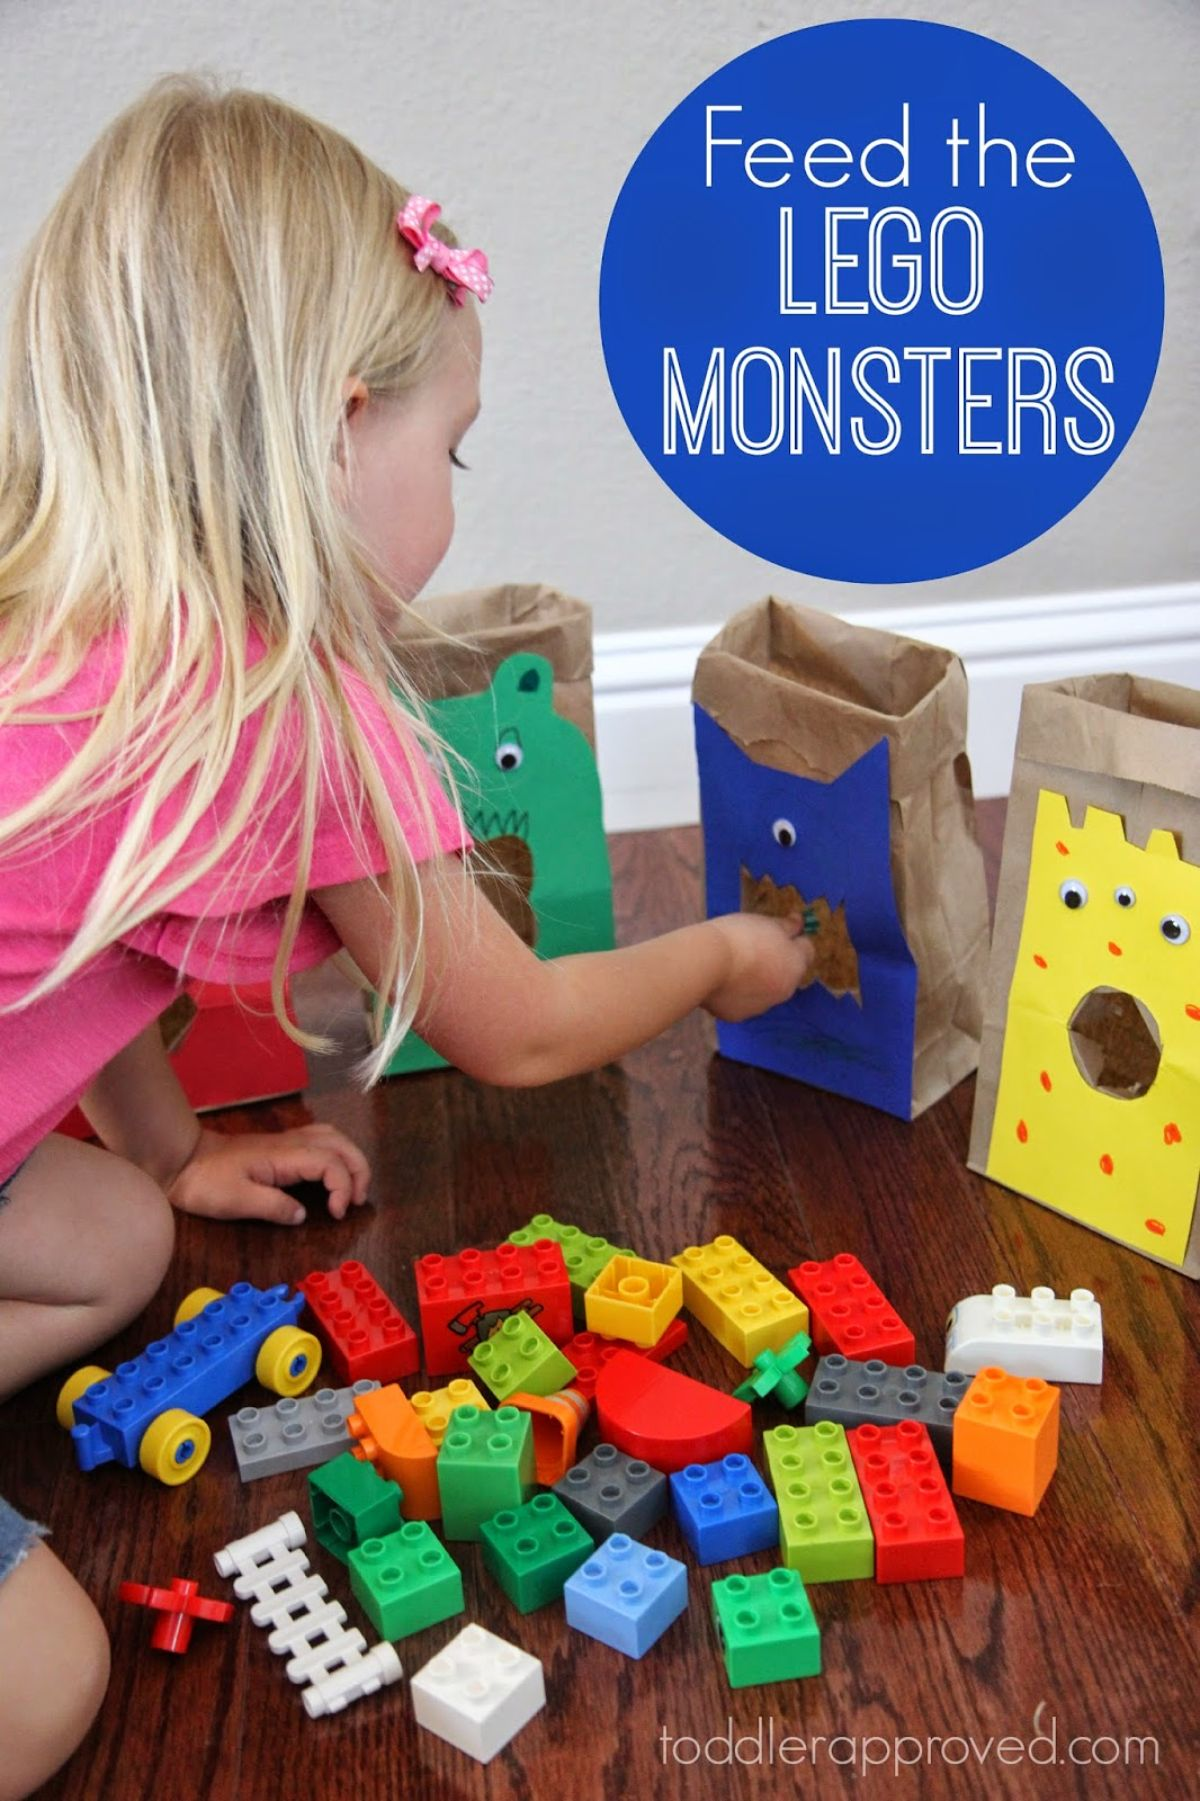 """the text reads """"Feed the LEGO Monsters"""" The image is of a blonde girl feeding lego pieces into paper bags painted to look like monsters"""